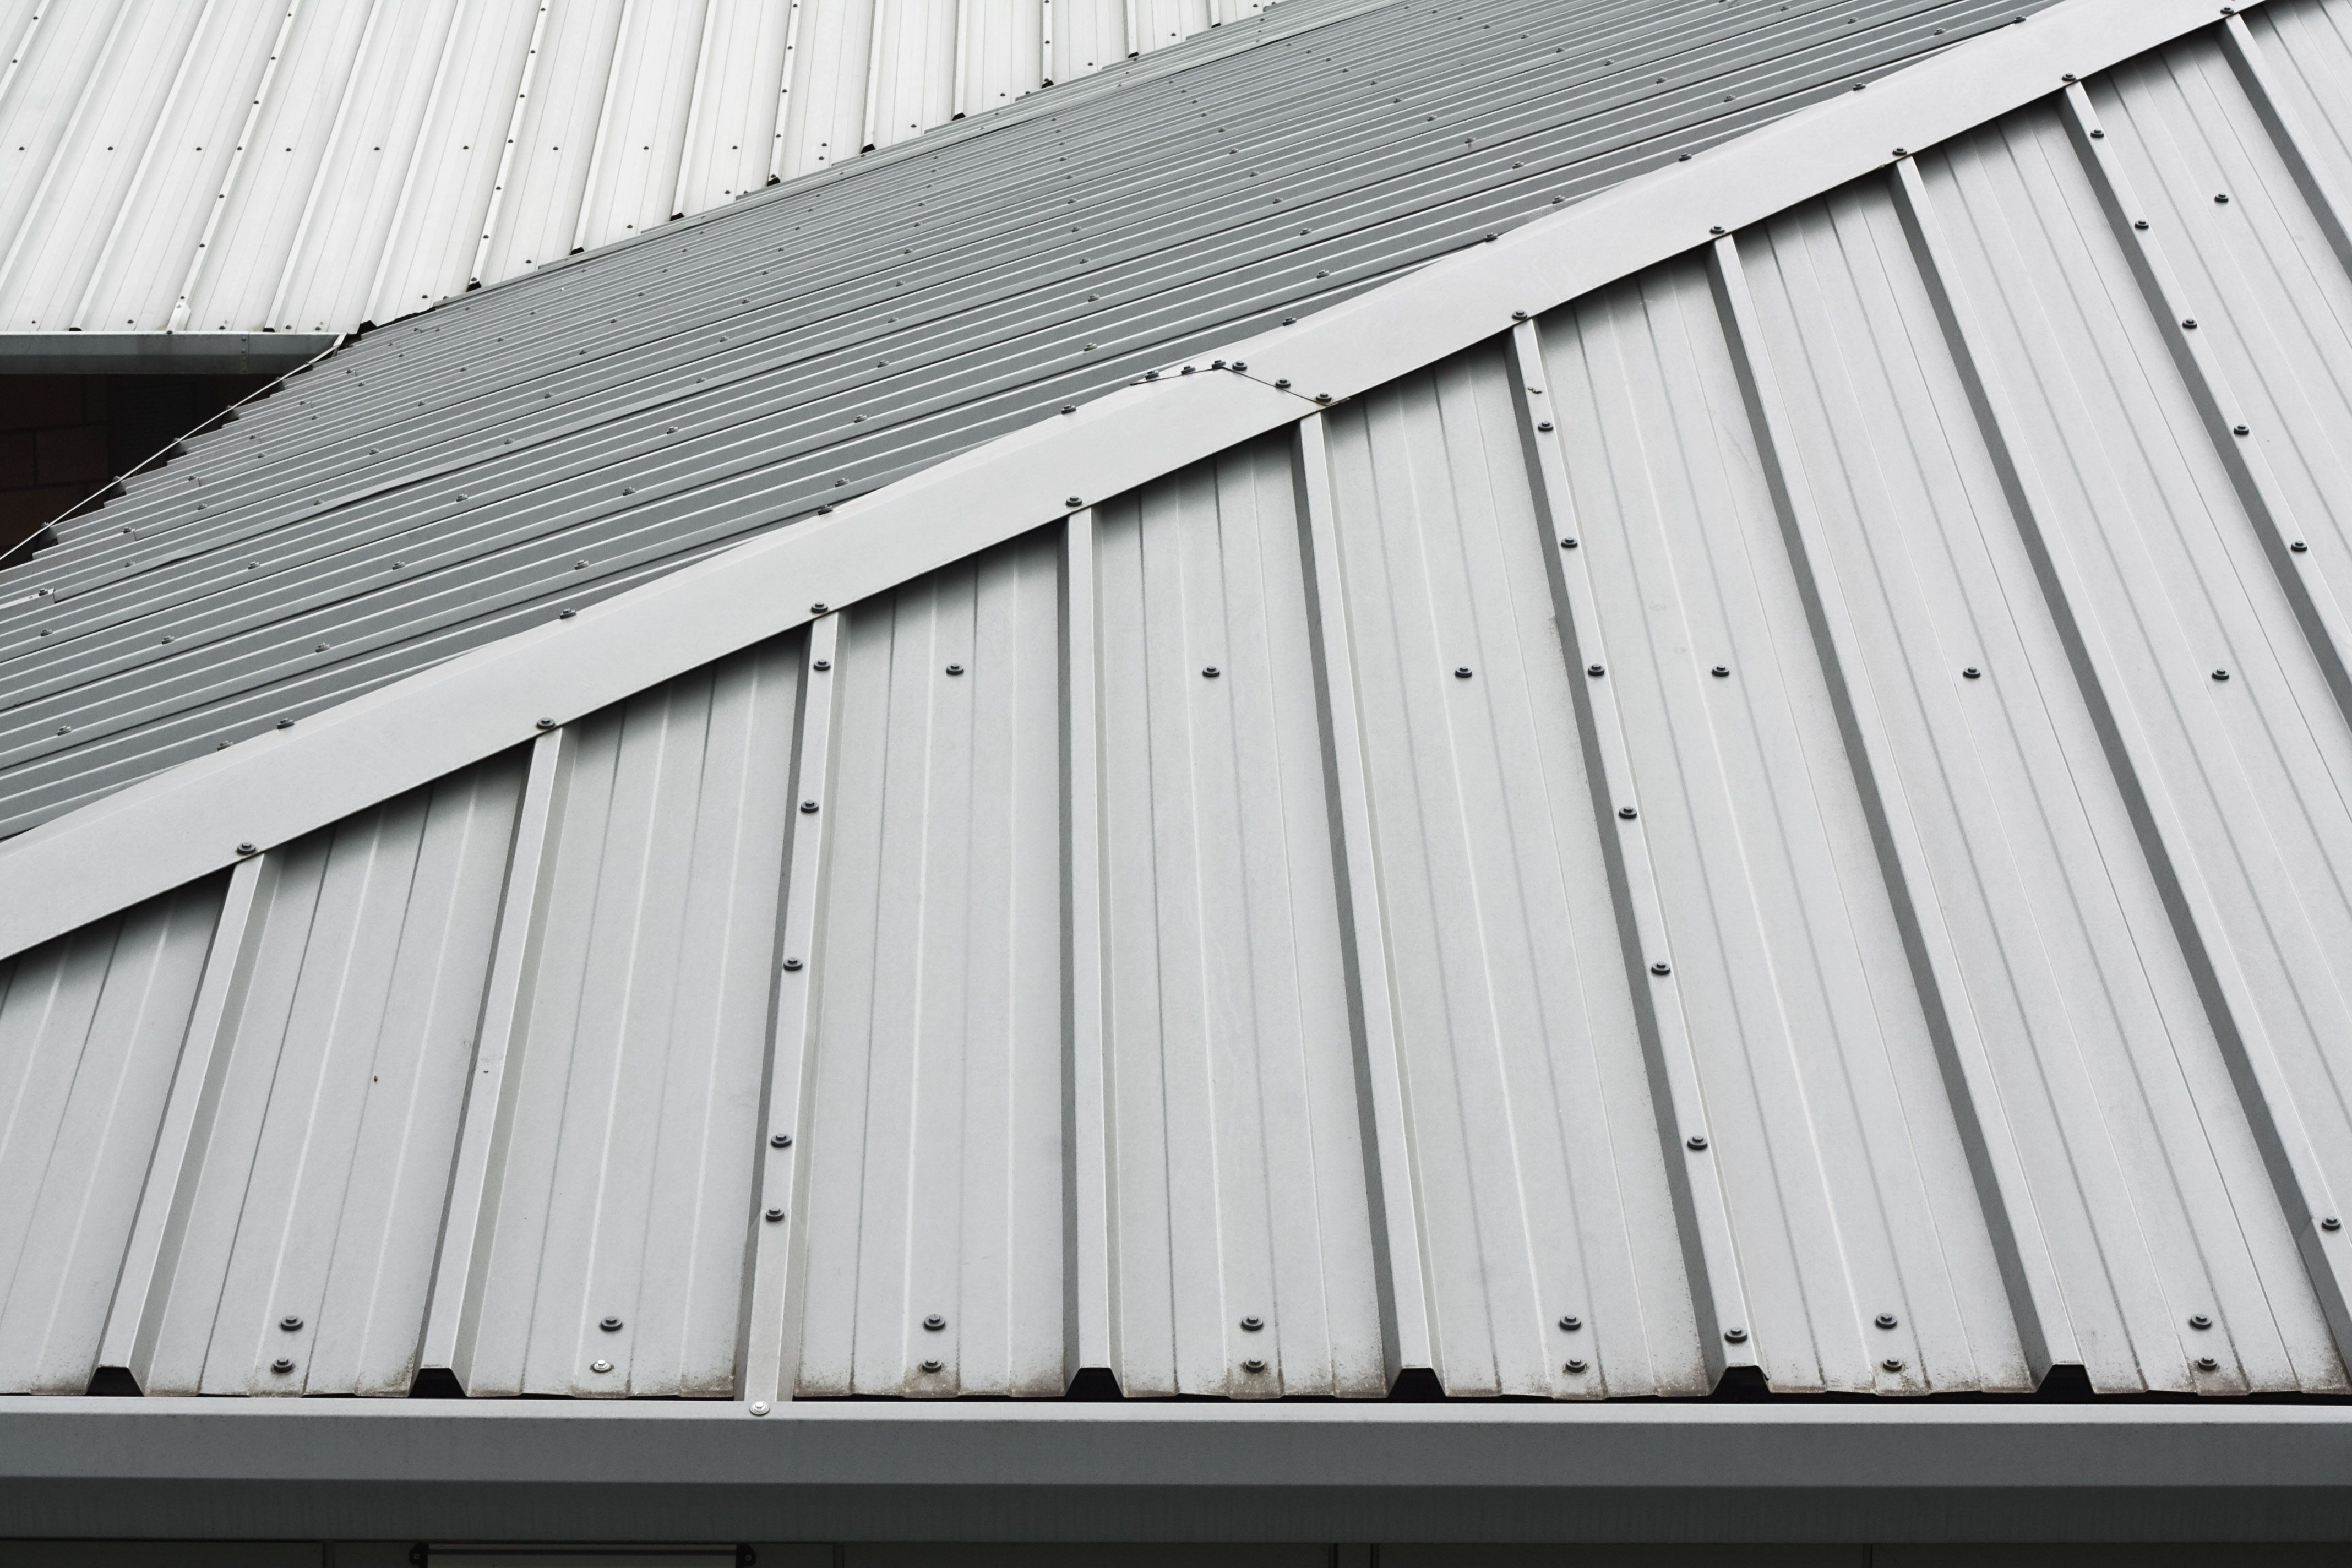 Three Roofing Materials That Can Survive High Winds Anchor Roofing Inc Archinect Metal Roof Installation Metal Roof Cost Metal Roof